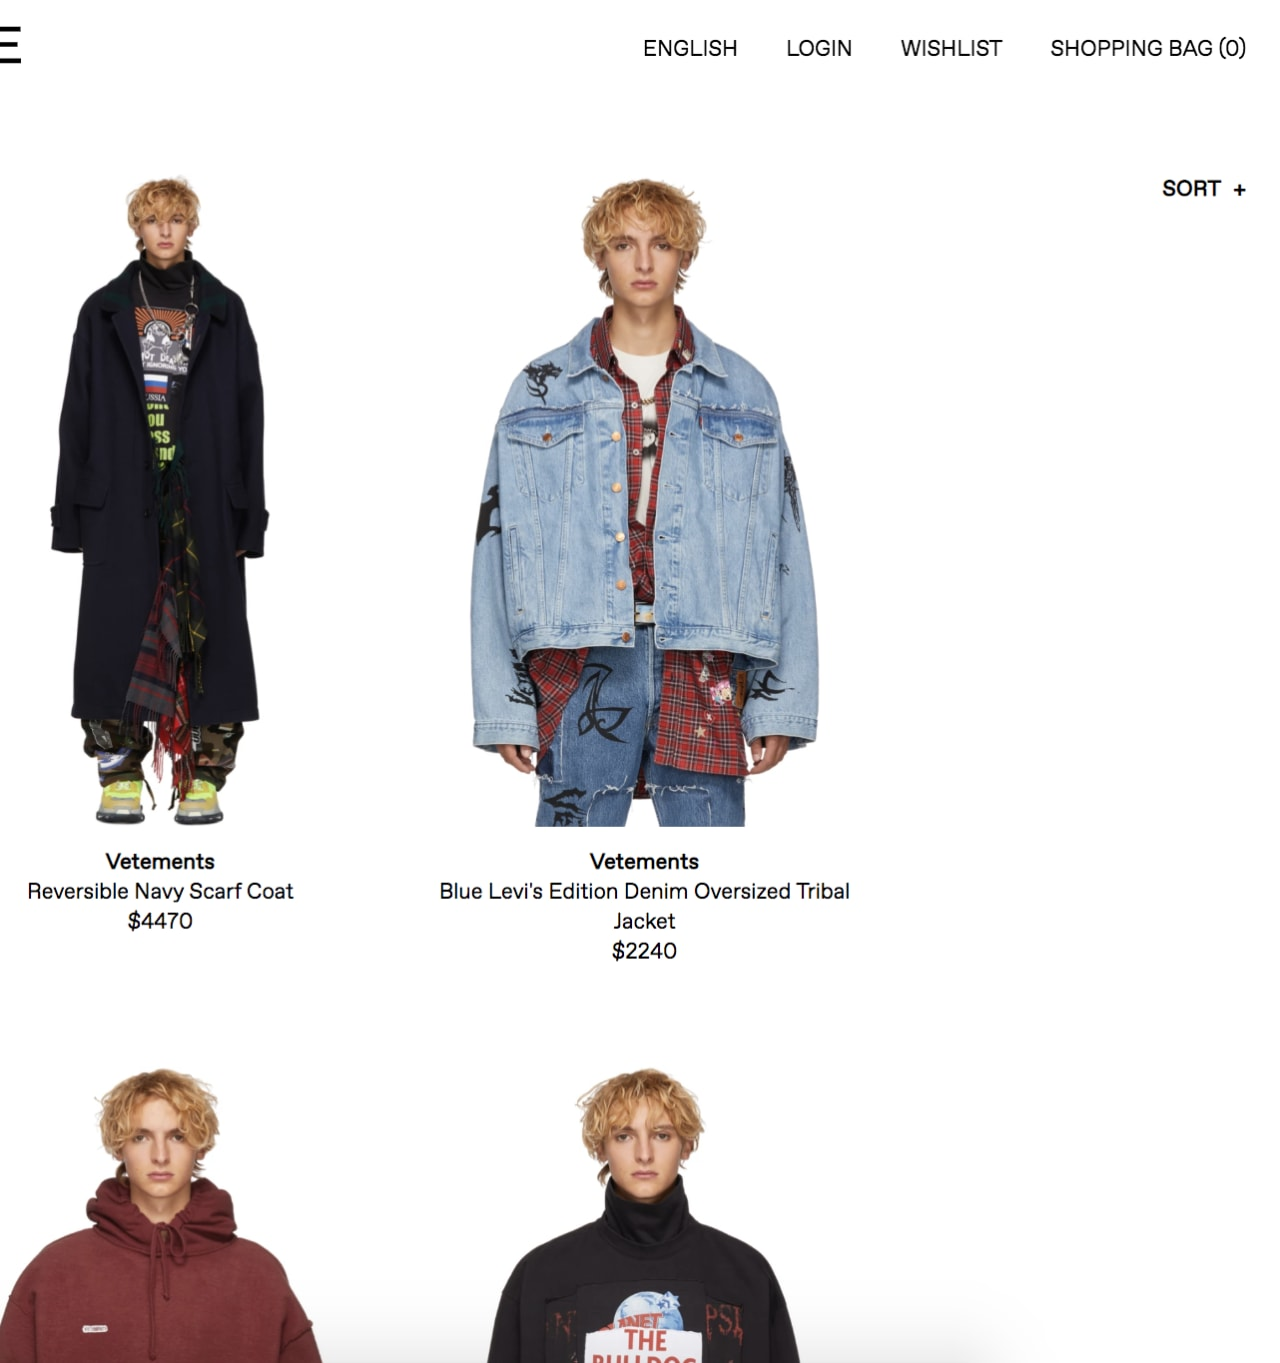 4ecdab66cf125 The 10 Best Online Clothing Stores For Men | Complex